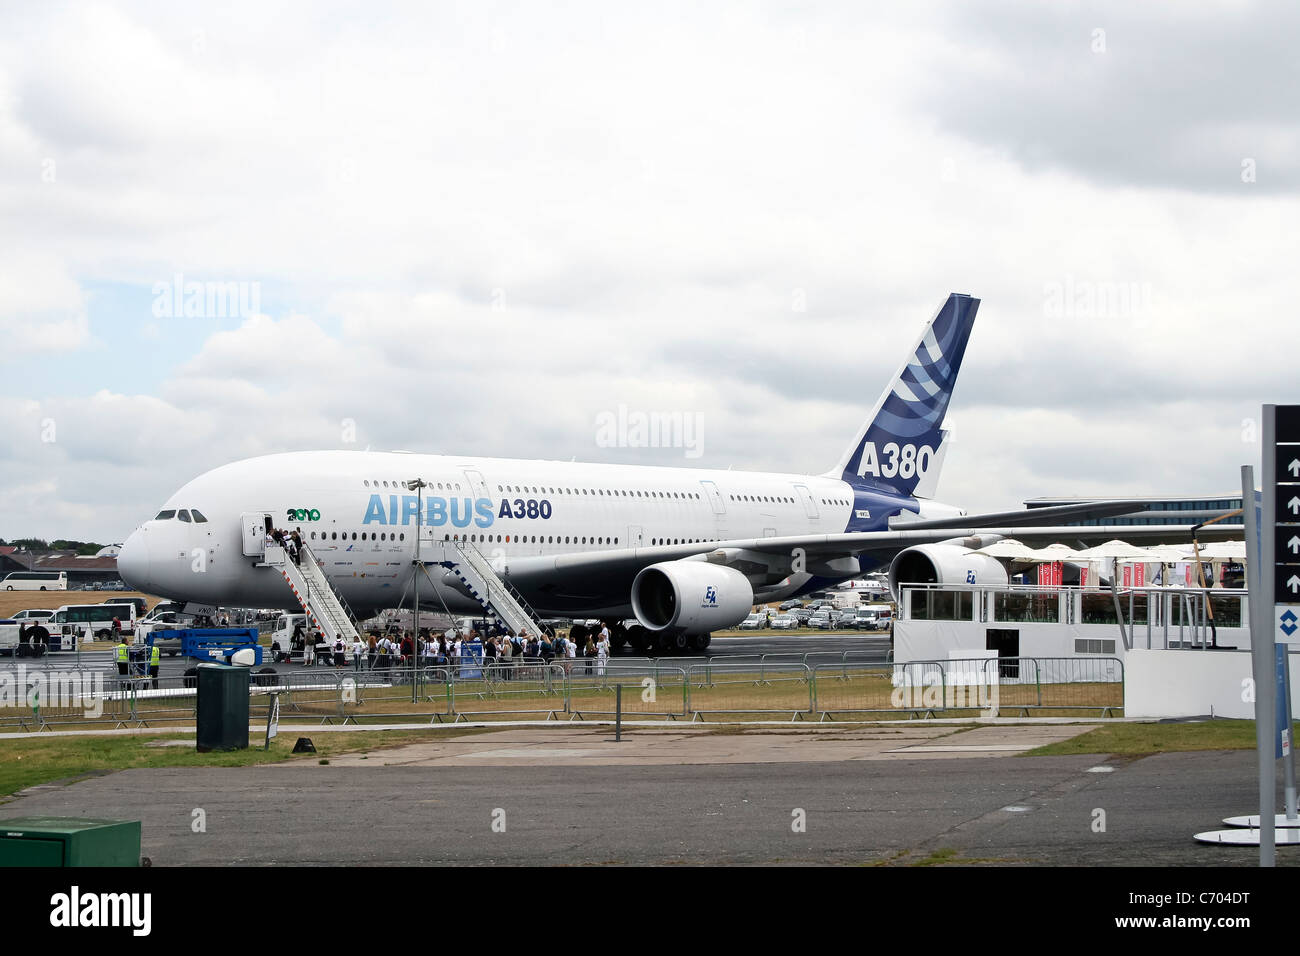 Display by the Airbus A380 at the Farnborough International Airshow - Stock Image